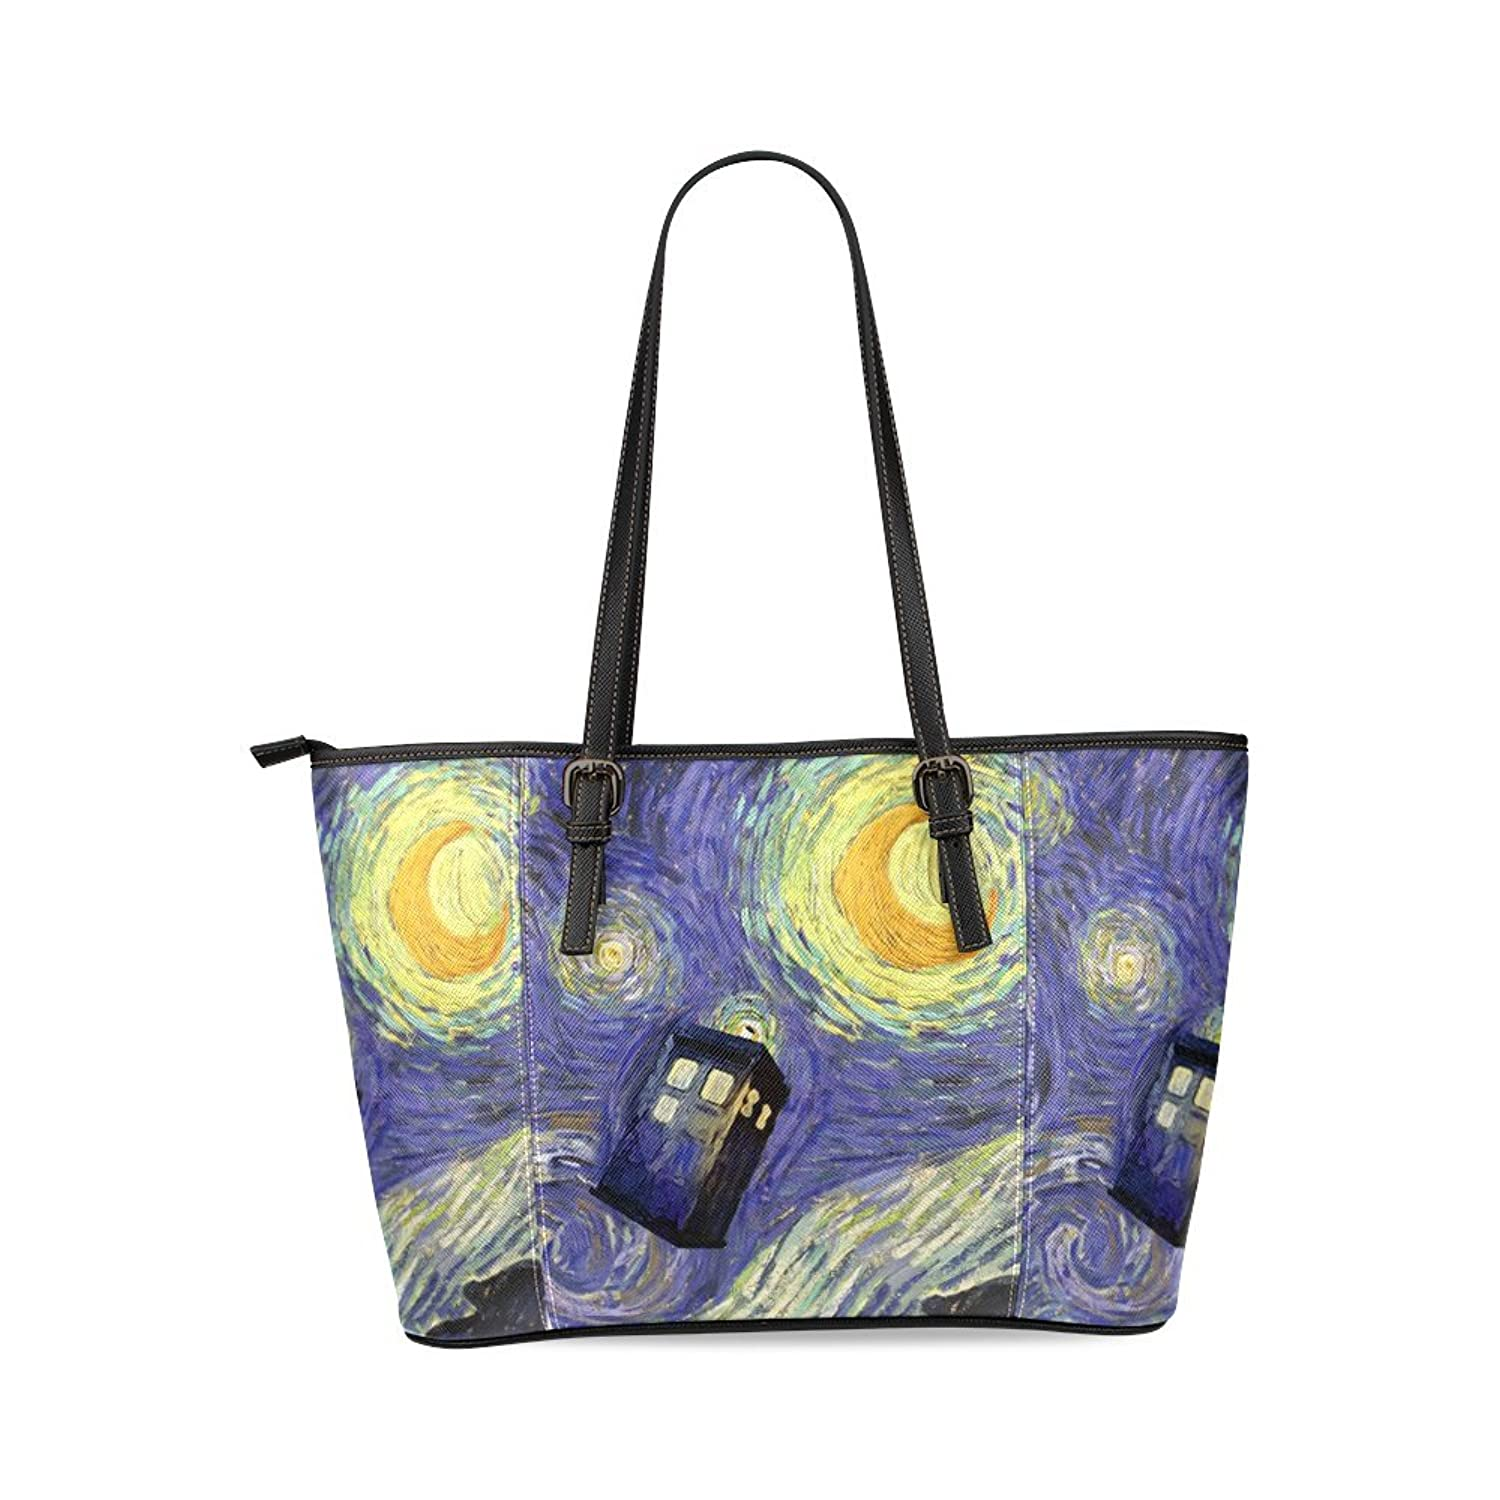 Starry Night Custom PU Leather Large Tote Bag/Handbag/Shoulder Bag for Fashion Women /Girls